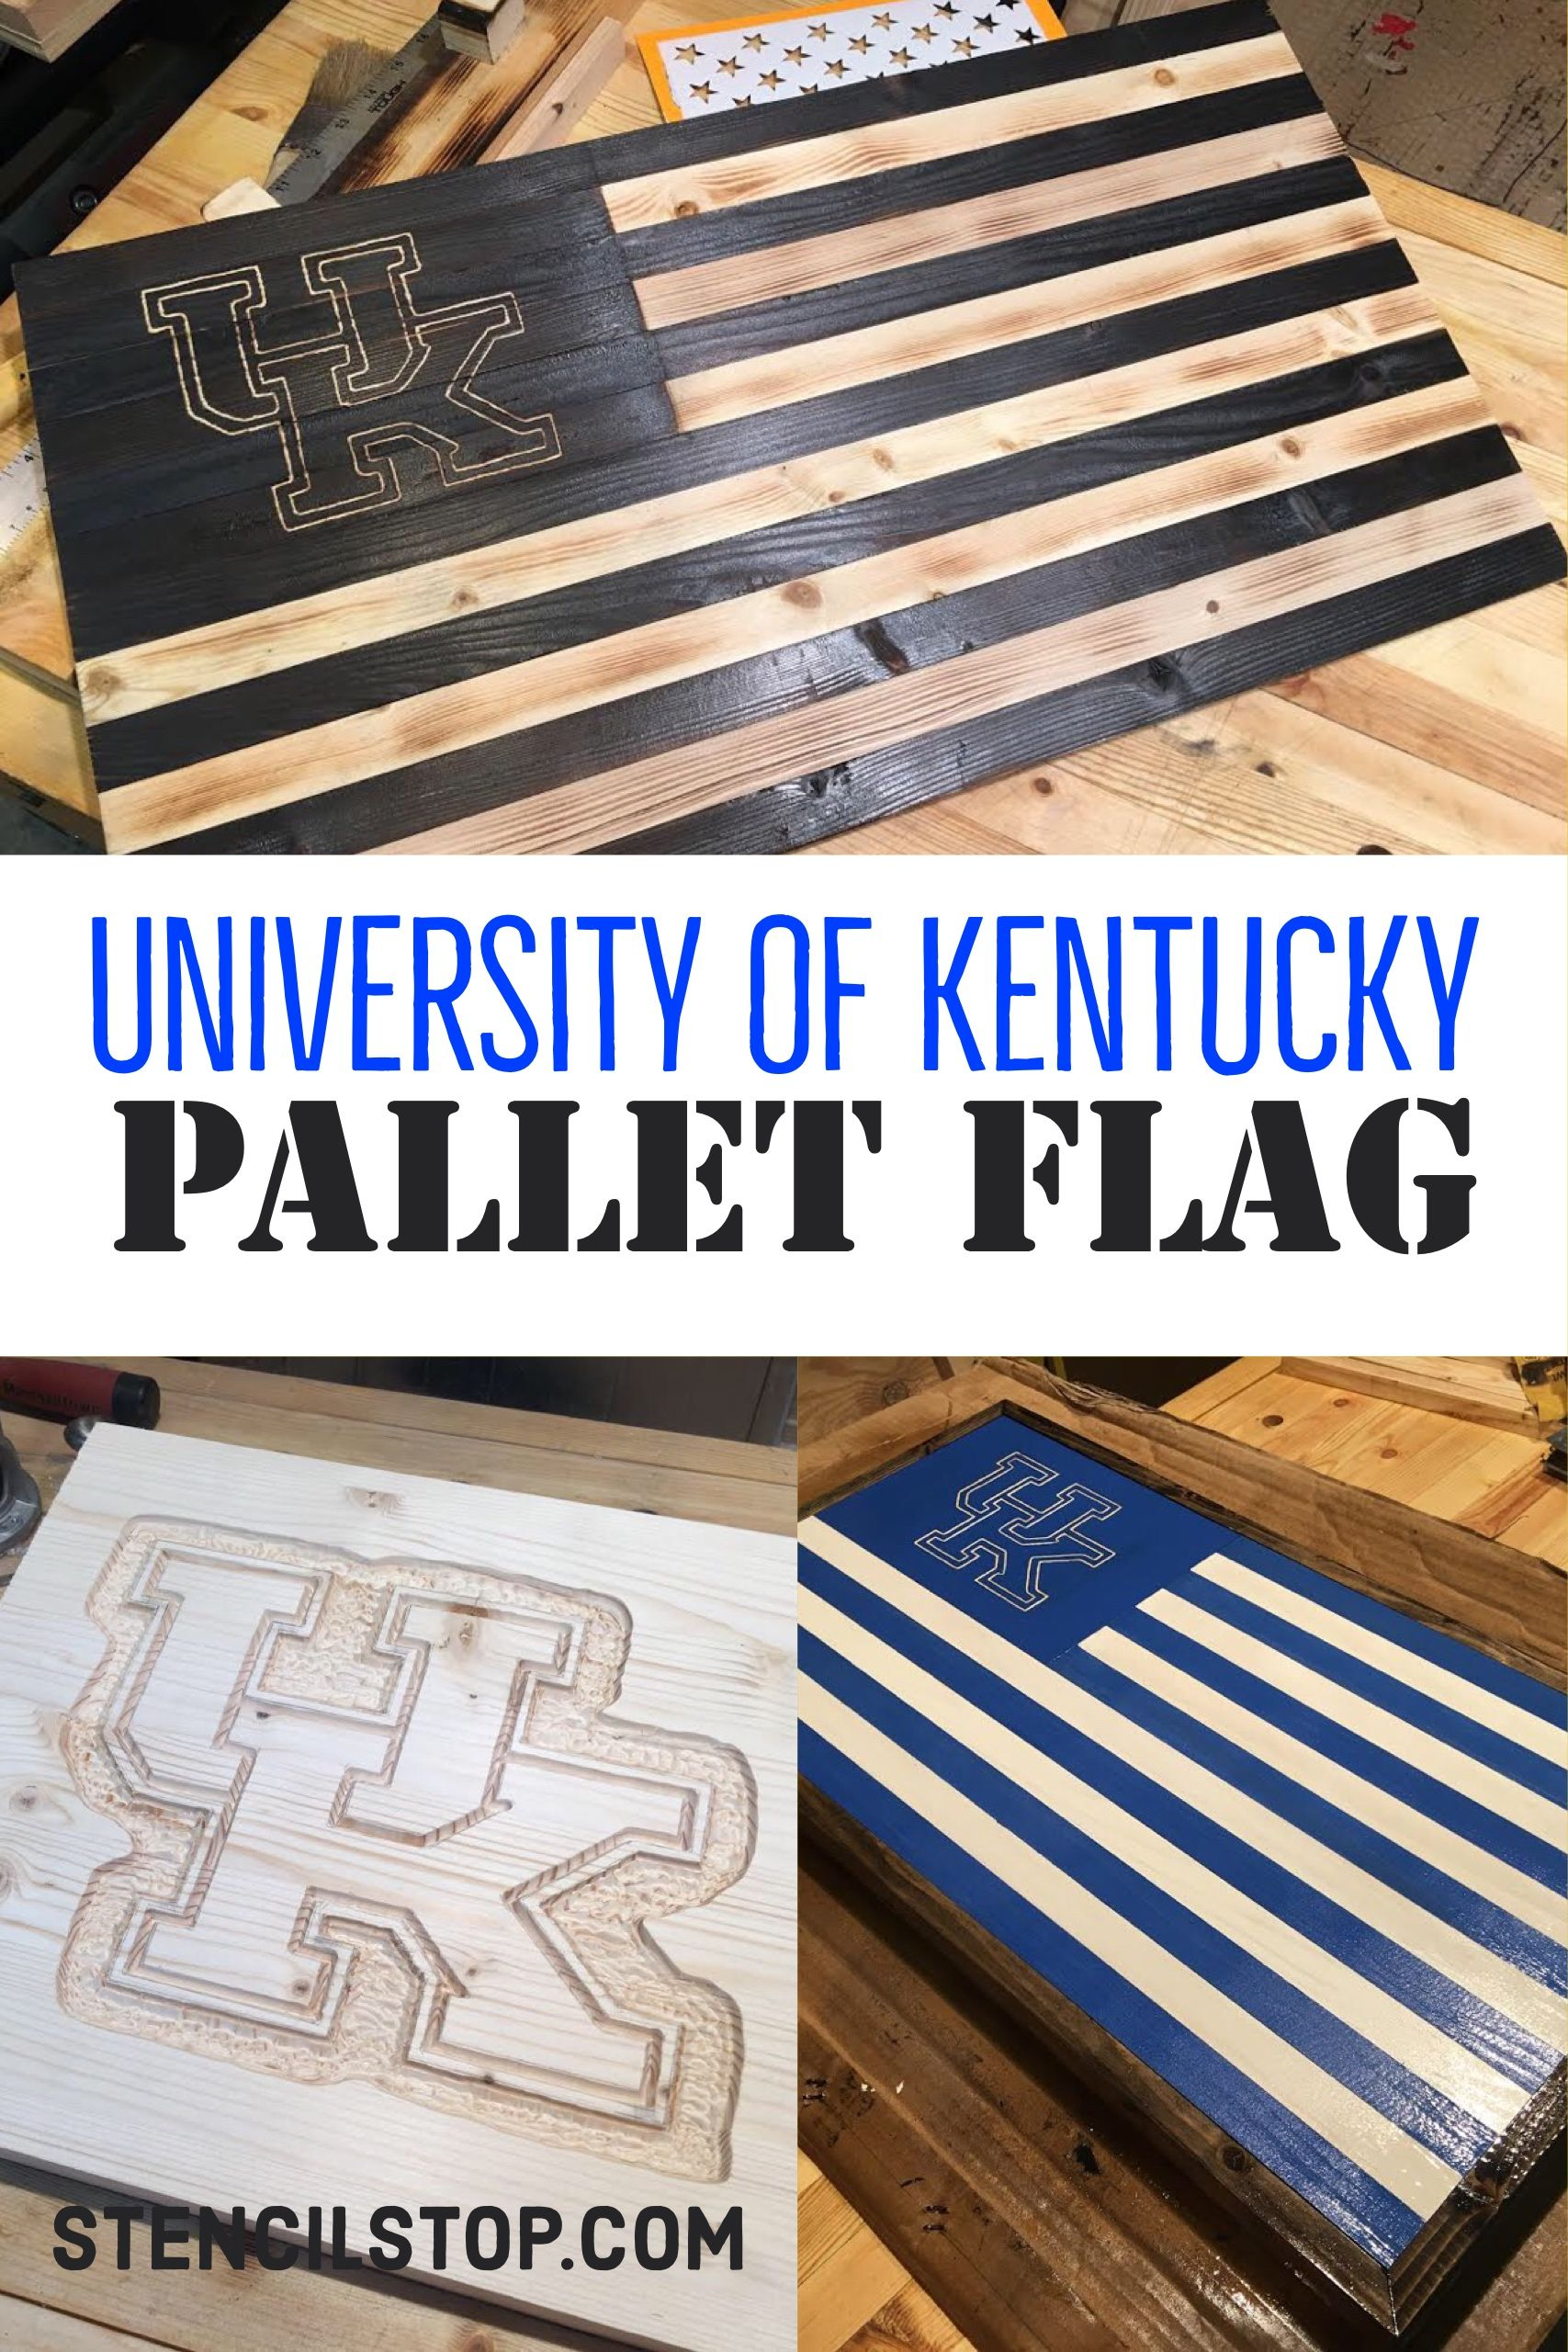 University Of Kentucky Wildcats Pallet American Flag Woodworking Stencil Designs Diy Projects University Of Kentucky Kentucky Wildcats Decor Wood Diy